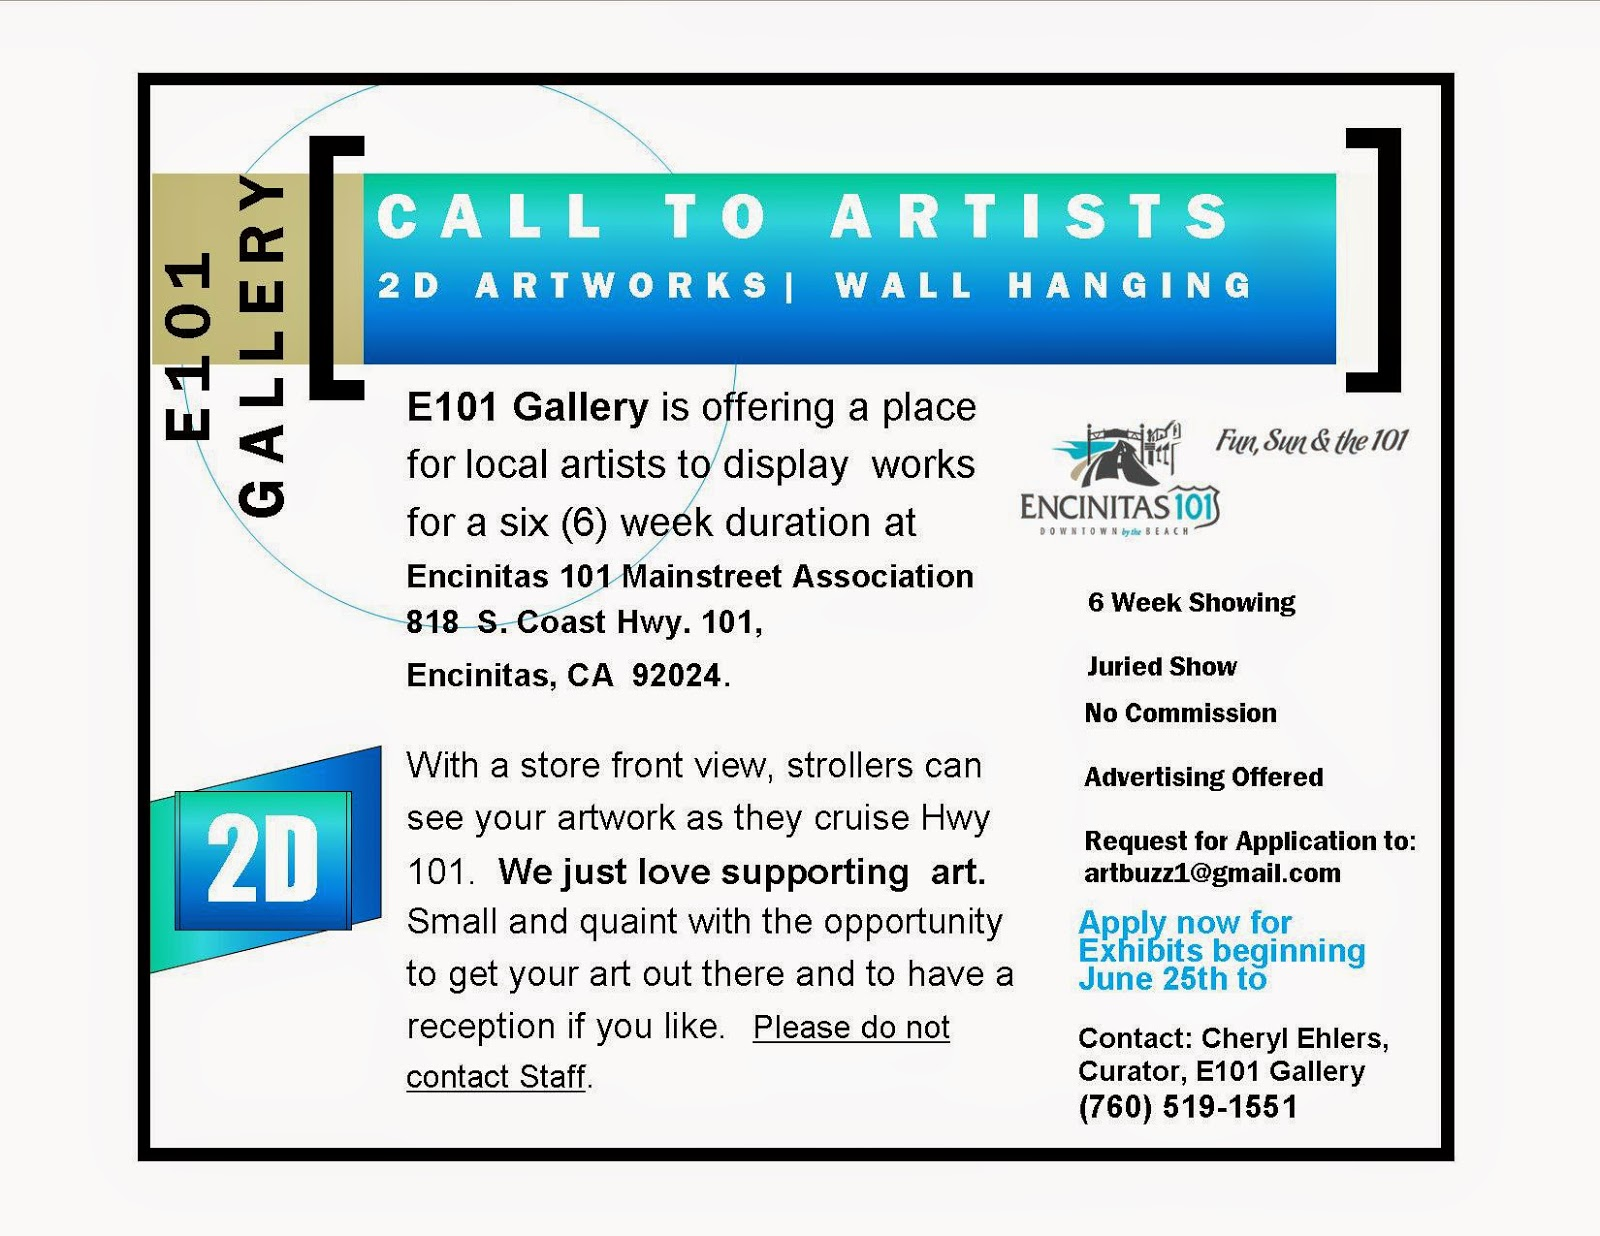 E101 Gallery Application